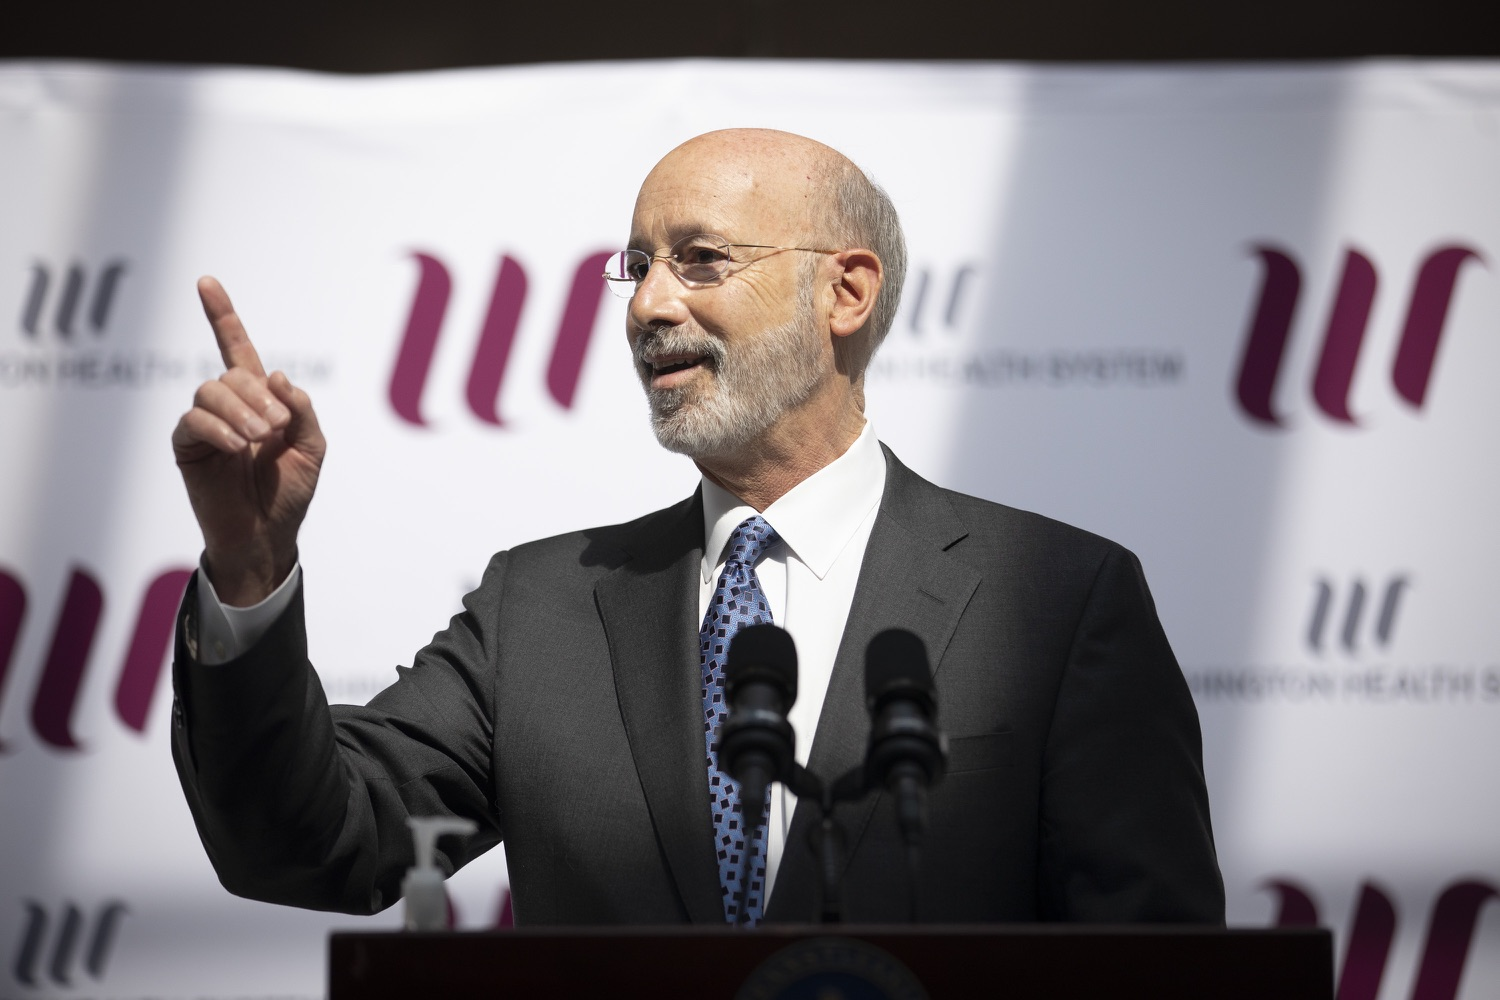 "<a href=""https://filesource.wostreaming.net/commonwealthofpa/photo/18712_gov_vaccines_dz_010.jpg"" target=""_blank"">⇣ Download Photo<br></a>Pennsylvania Governor Tom Wolf speaking with the press.  Continuing to visit COVID-19 vaccine clinics around the state, Governor Tom Wolf toured a clinic at the Washington Crown Center in Washington County today. The clinic is one of three operated by the Washington Health System (WHS) serving rural communities in southwestern Pennsylvania.  North Franklin Township, PA  April 28, 2021"